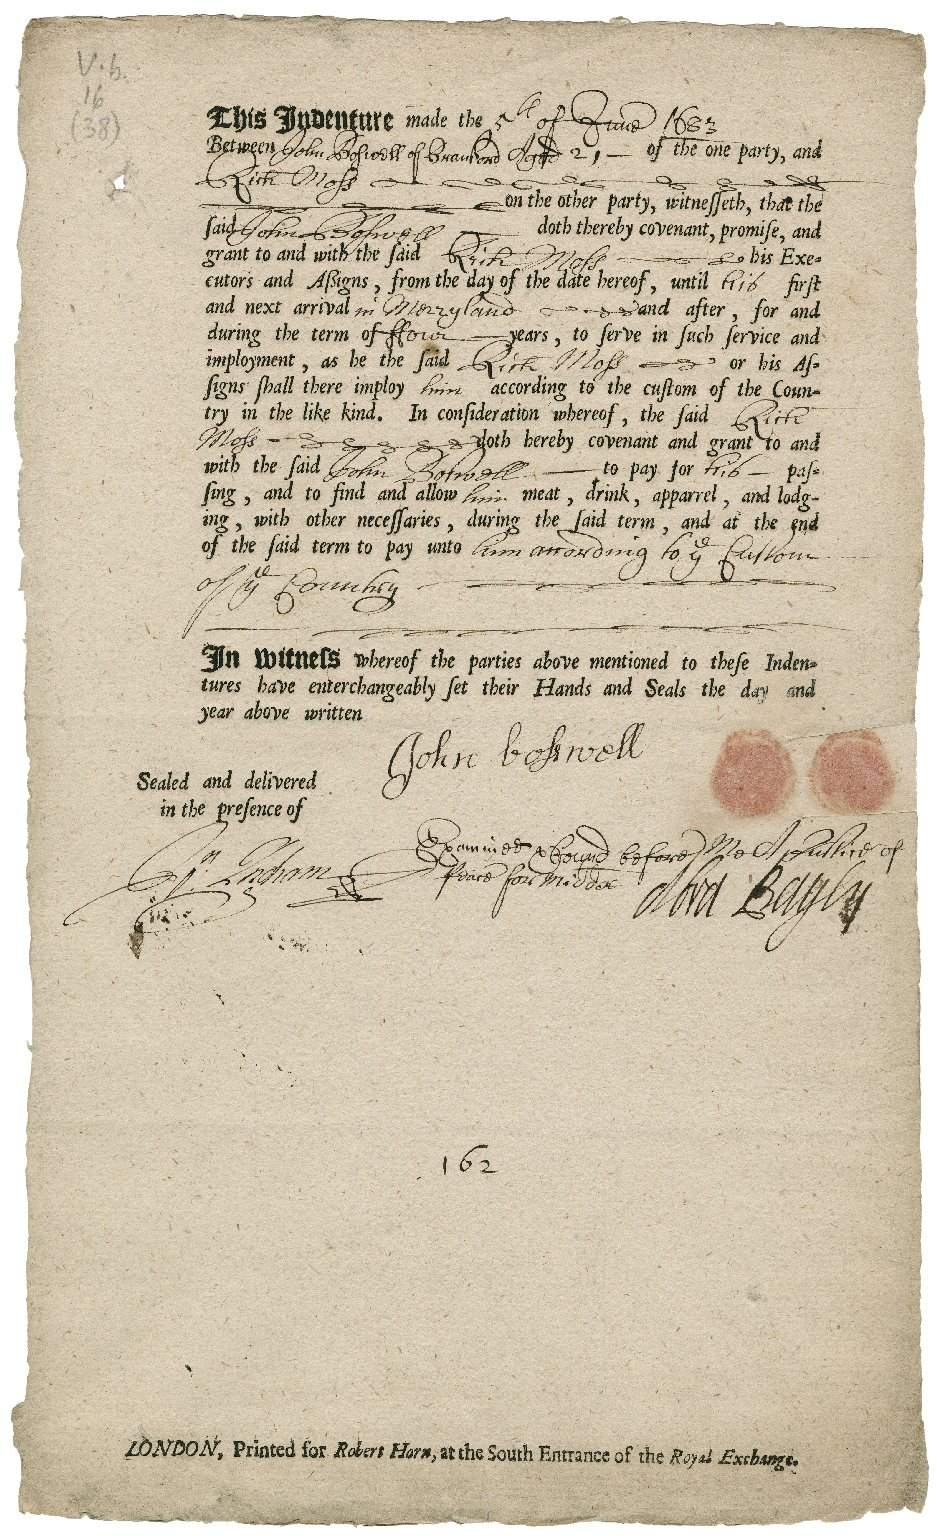 indentured servant contracts for the colonies of maryland